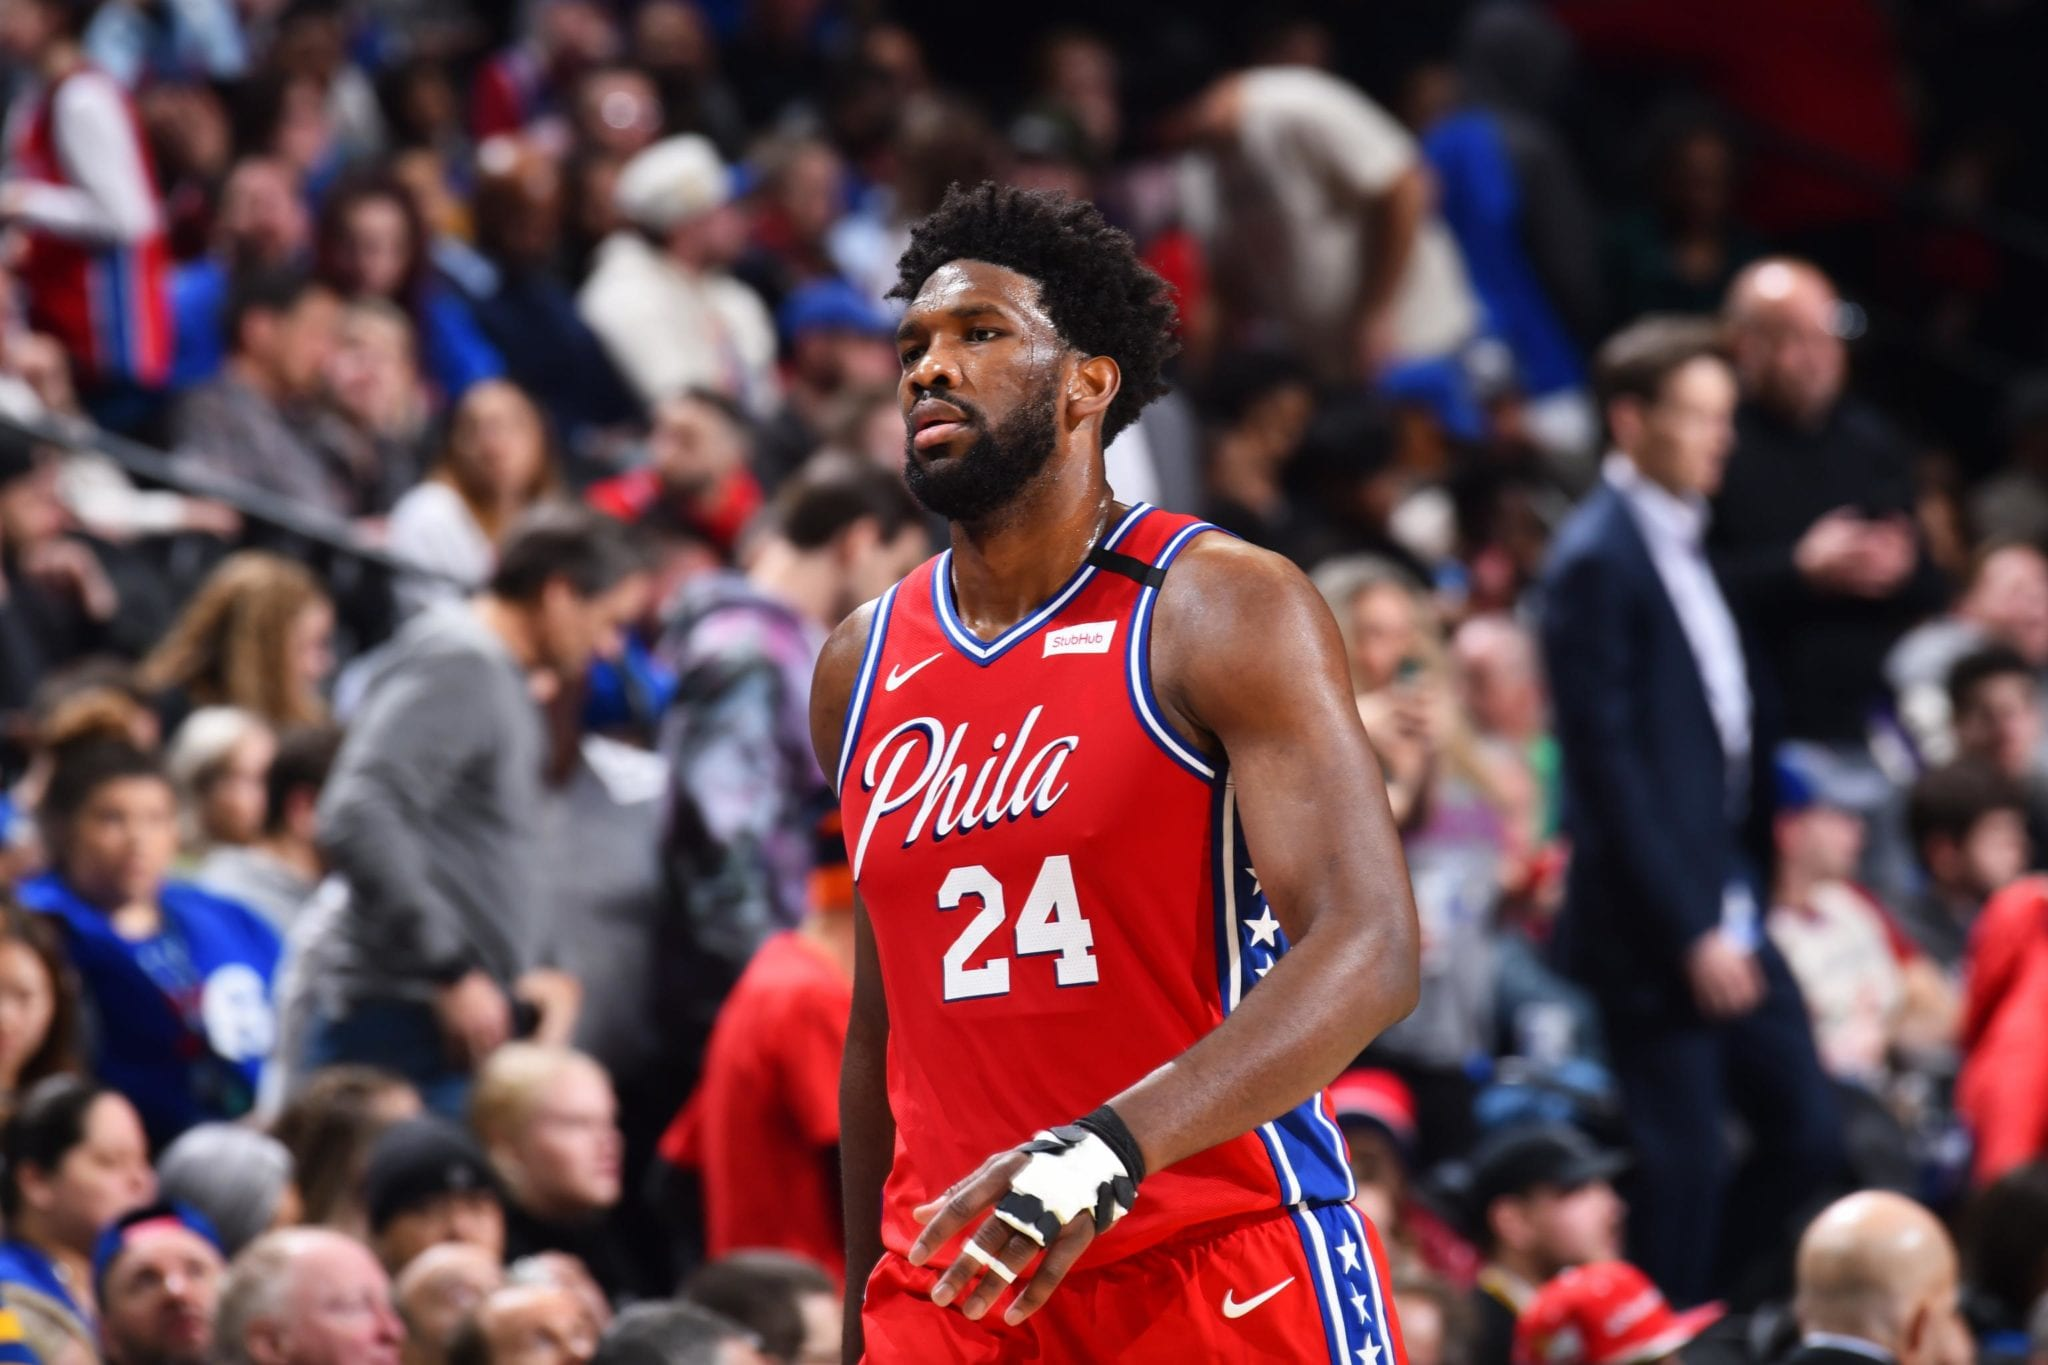 Joel Embiid Says LeBron Should Have Been Ejected for Flagrant Foul